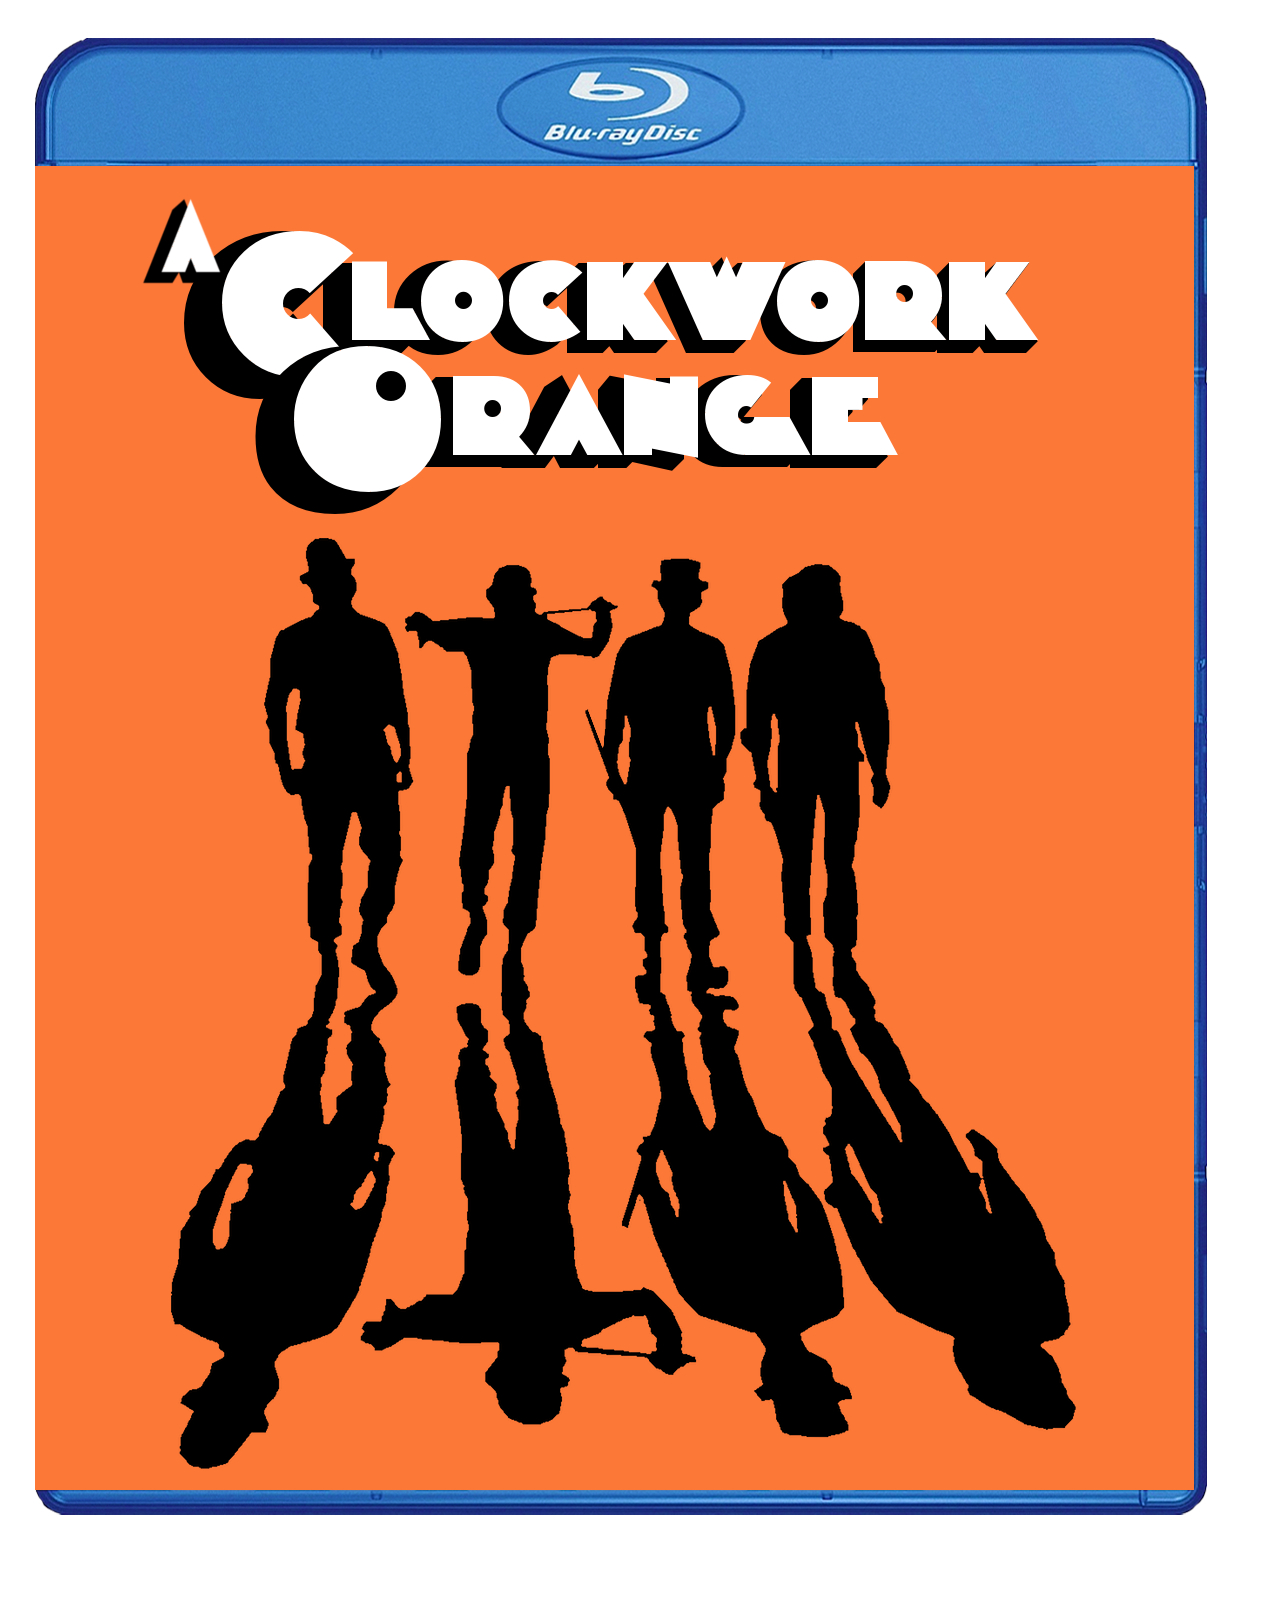 a clockwork orange violence and corruption essay